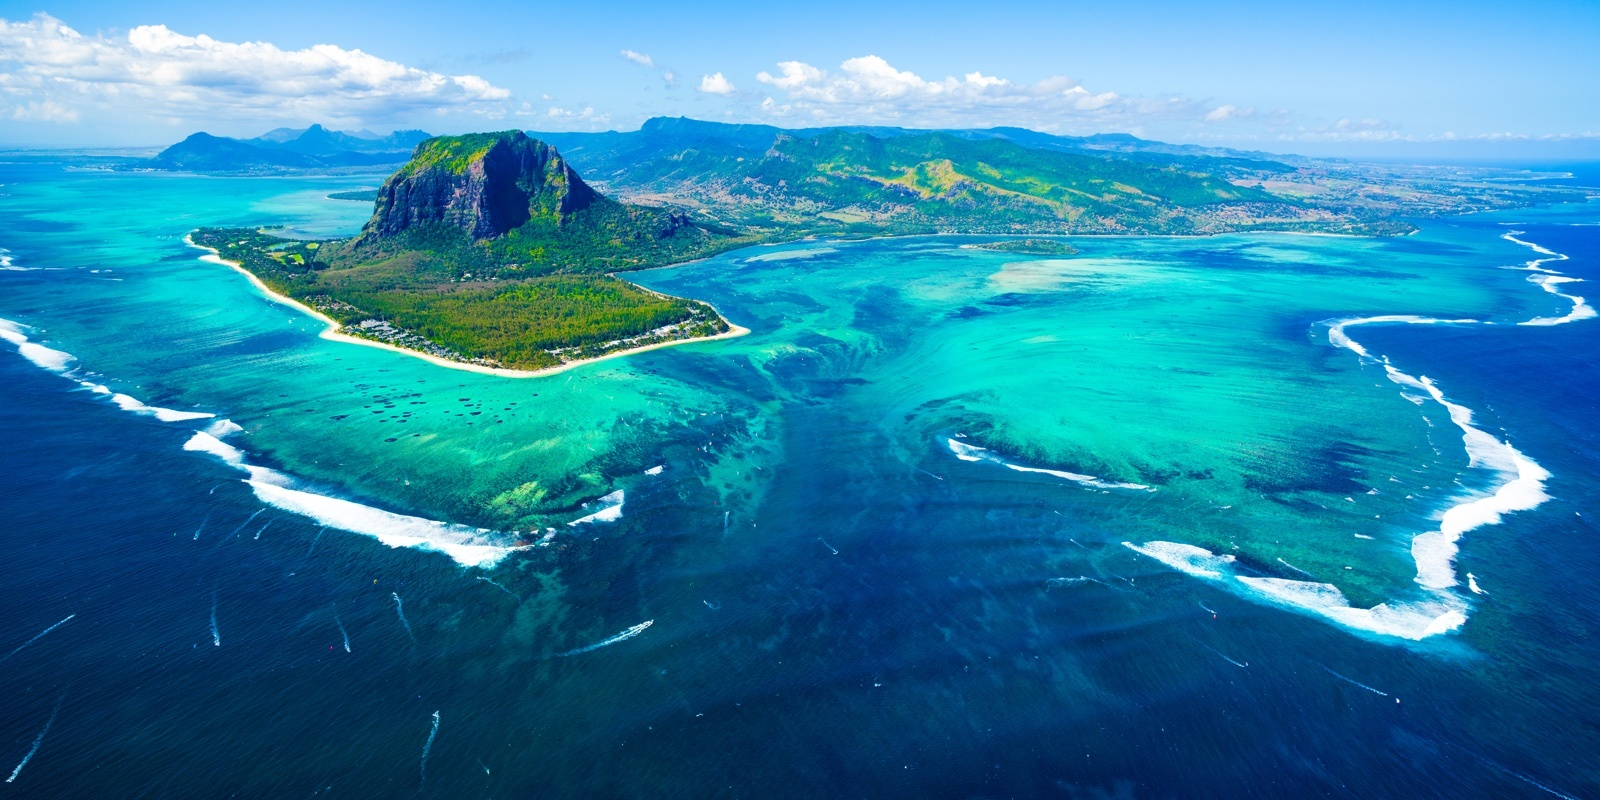 Travel blog: 12 Super Vivid Pictures Of Mauritius We Can't Take Our Eyes Off